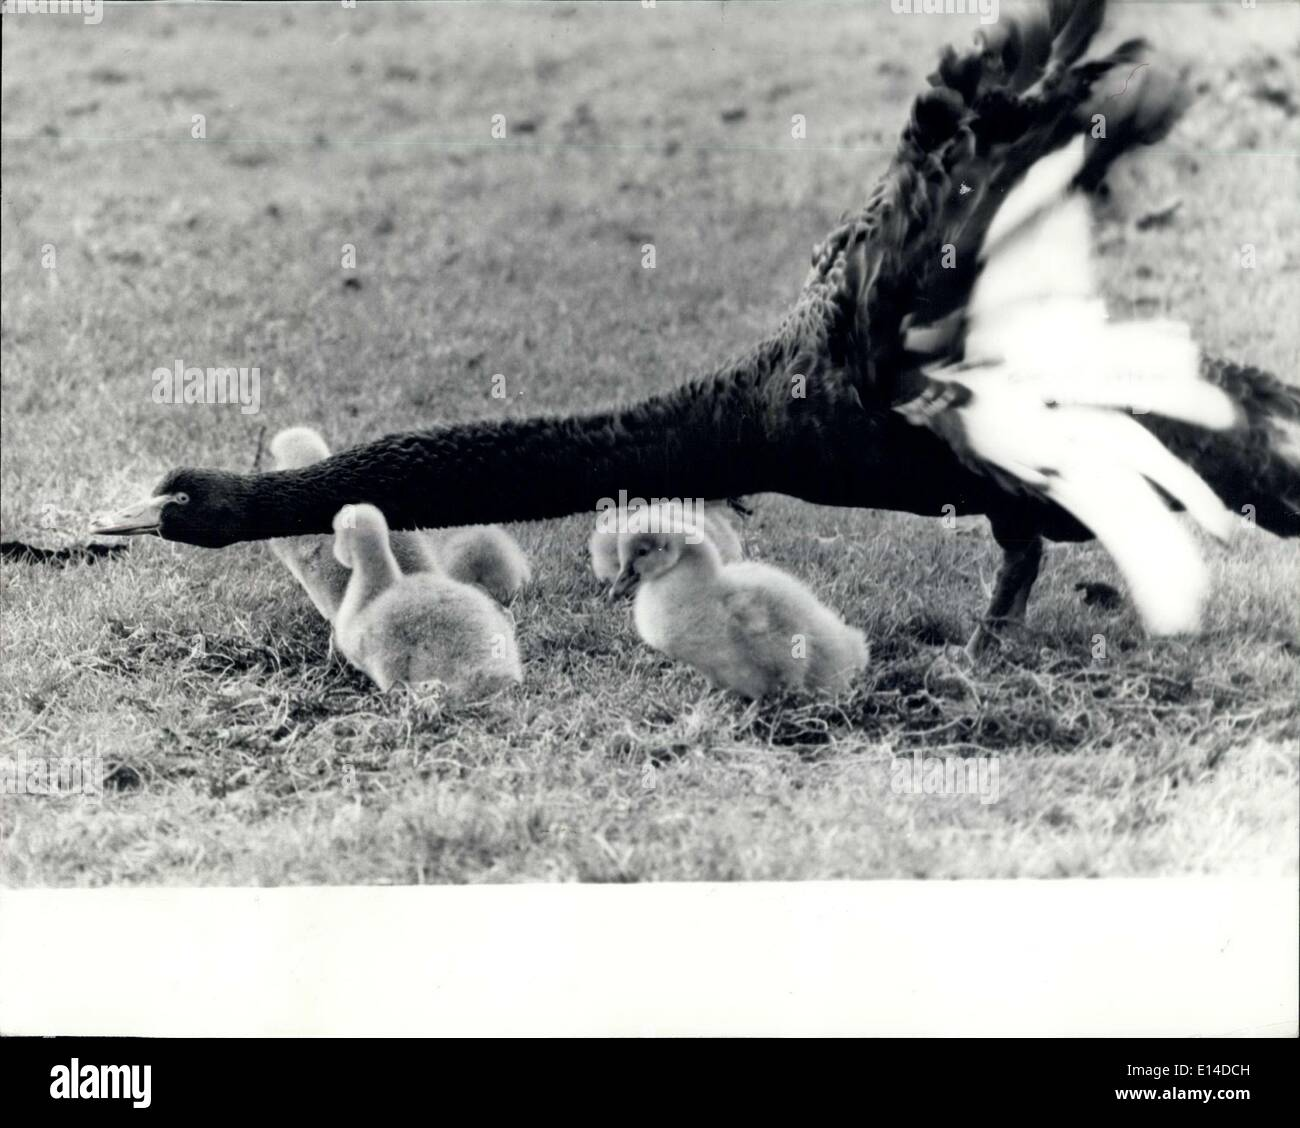 Apr. 17, 2012 - Just Like The Concorde: This Black Swan was out in the park with her family of young Cygnets when an approaching photographer came to close to her young s she took up his protective pose which makes it look like the Concorde's taking off. - Stock Image